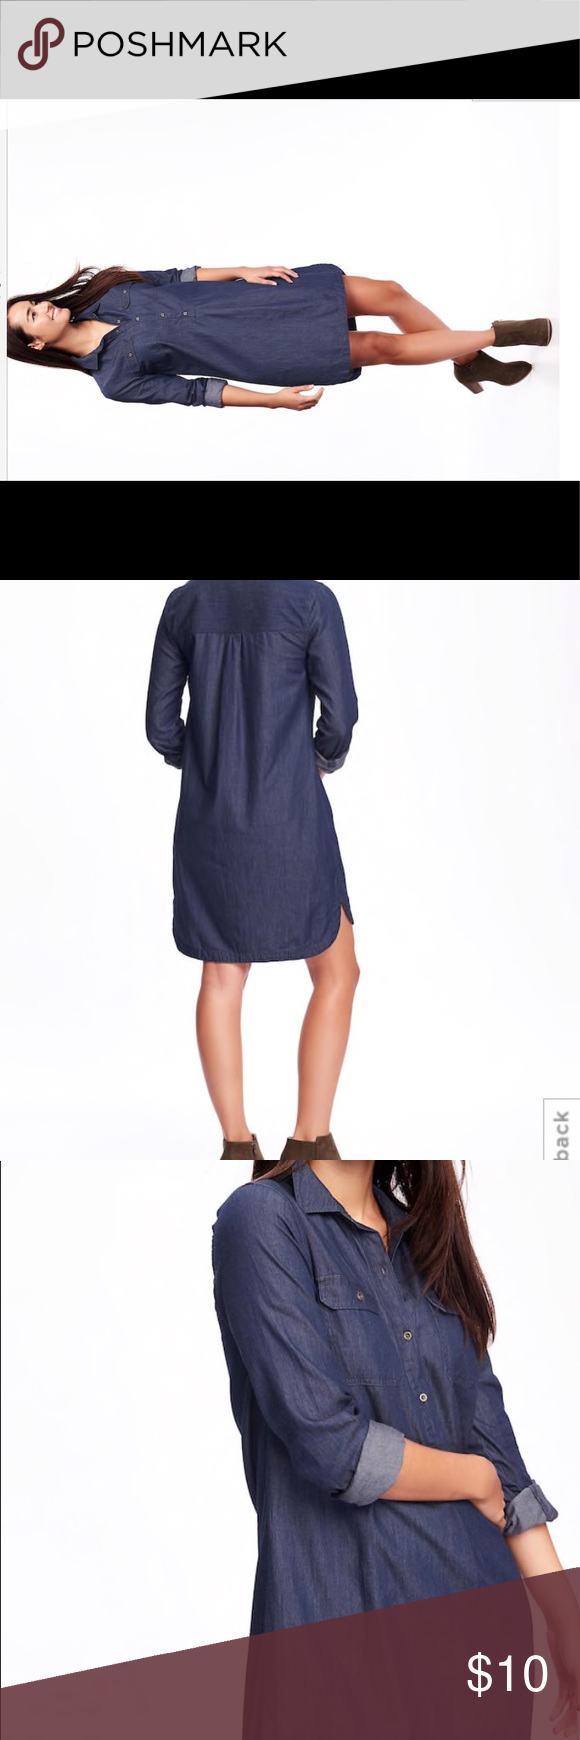 Last call! Old navy chambray shirt dress for women